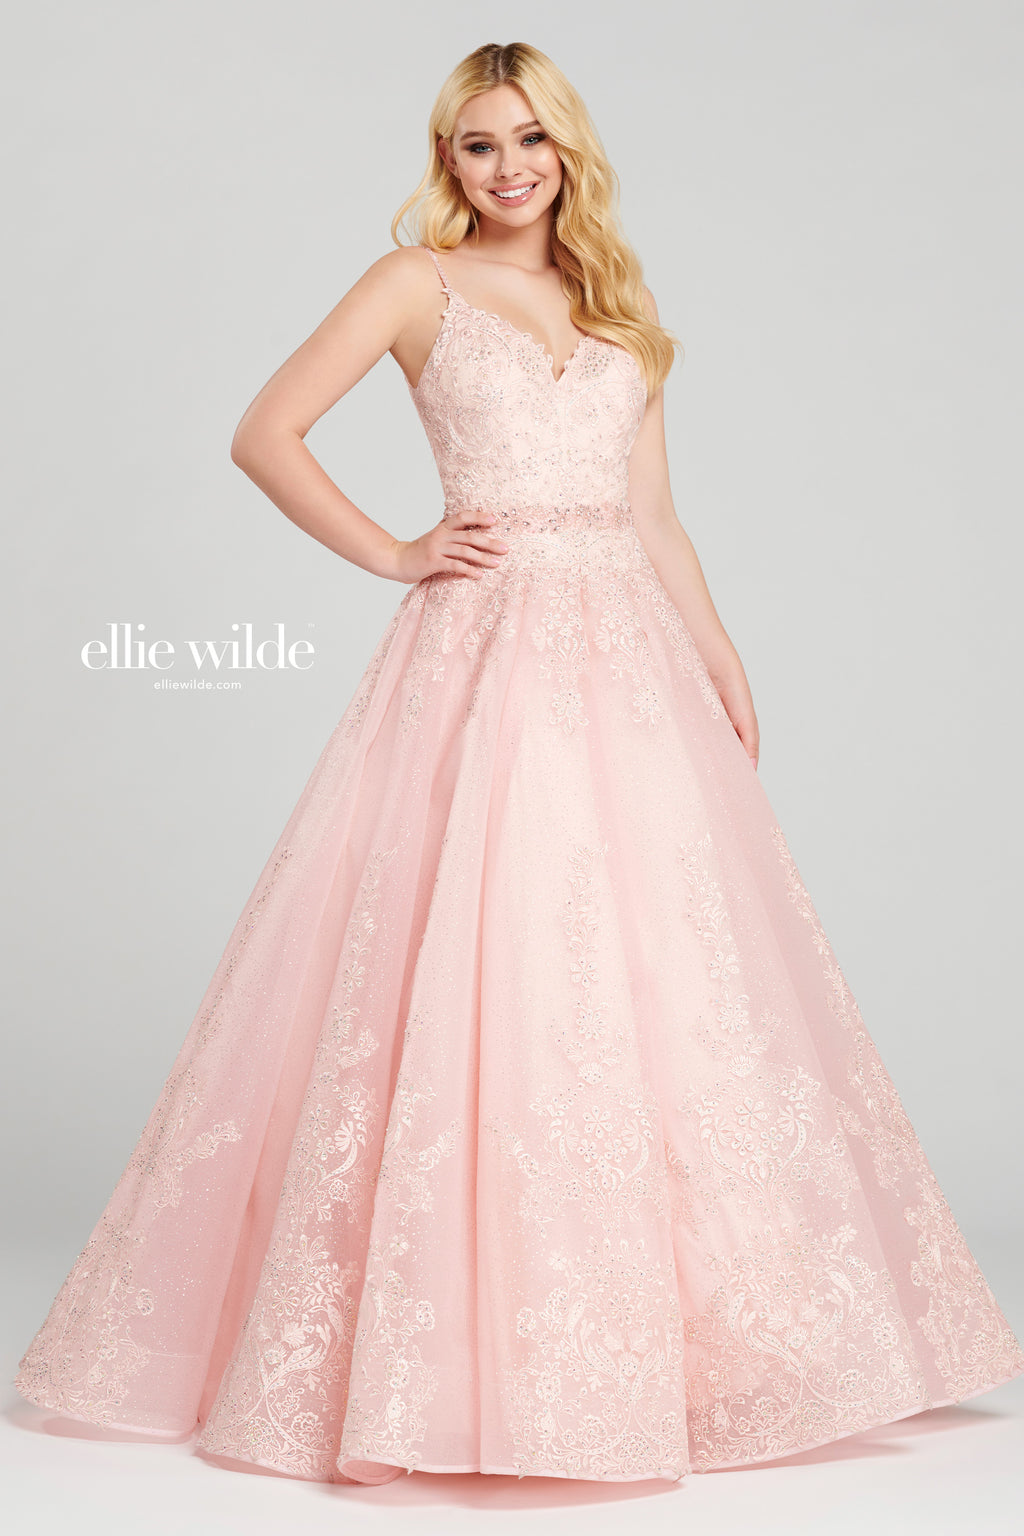 Ellie Wilde Pink Ball Gown